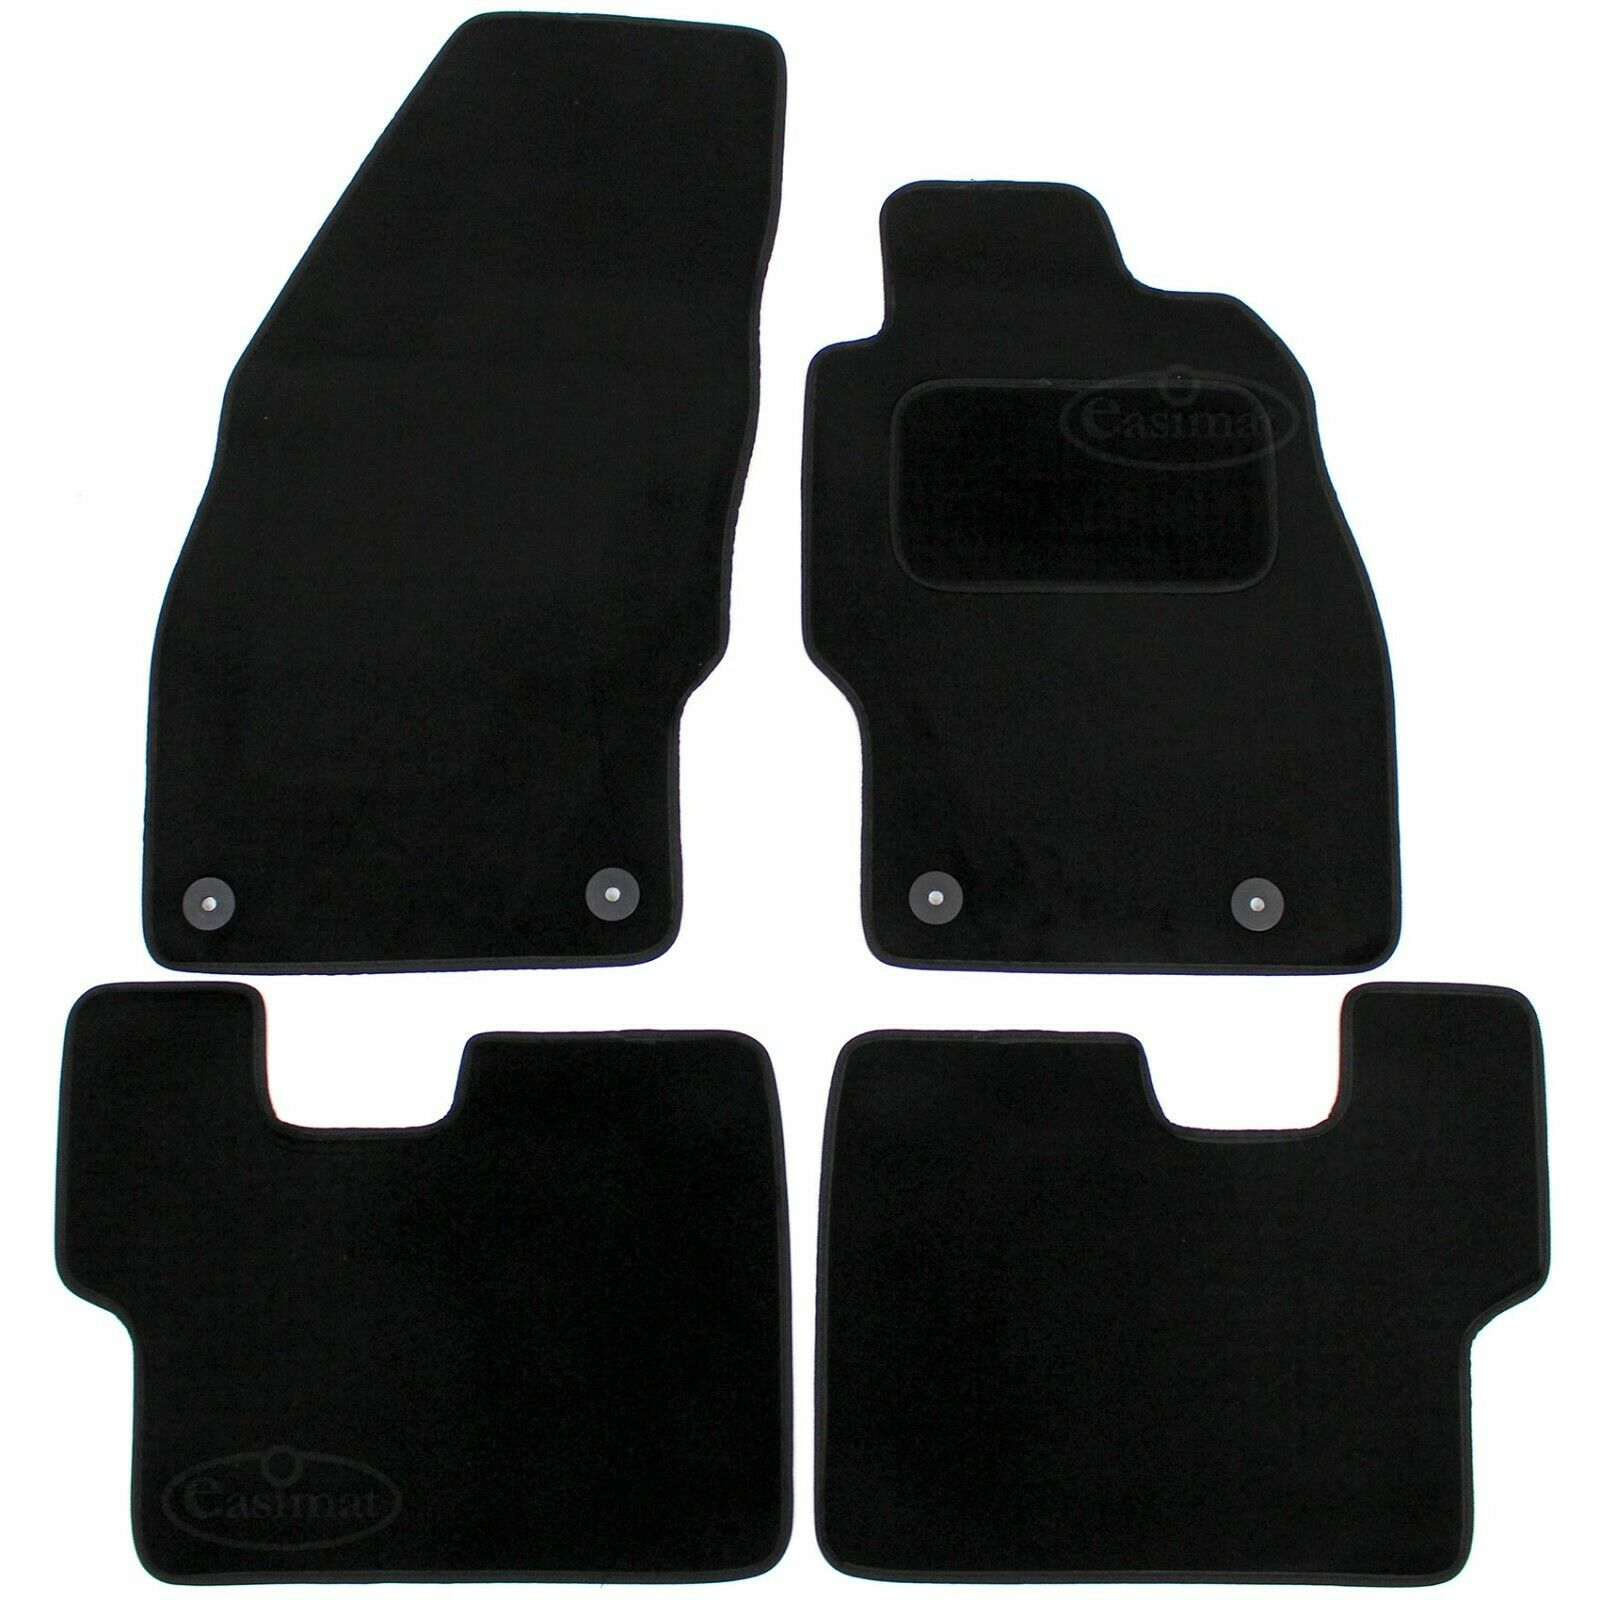 vauxhall corsa d e 2006 onwards tailored carpet car mats. Black Bedroom Furniture Sets. Home Design Ideas